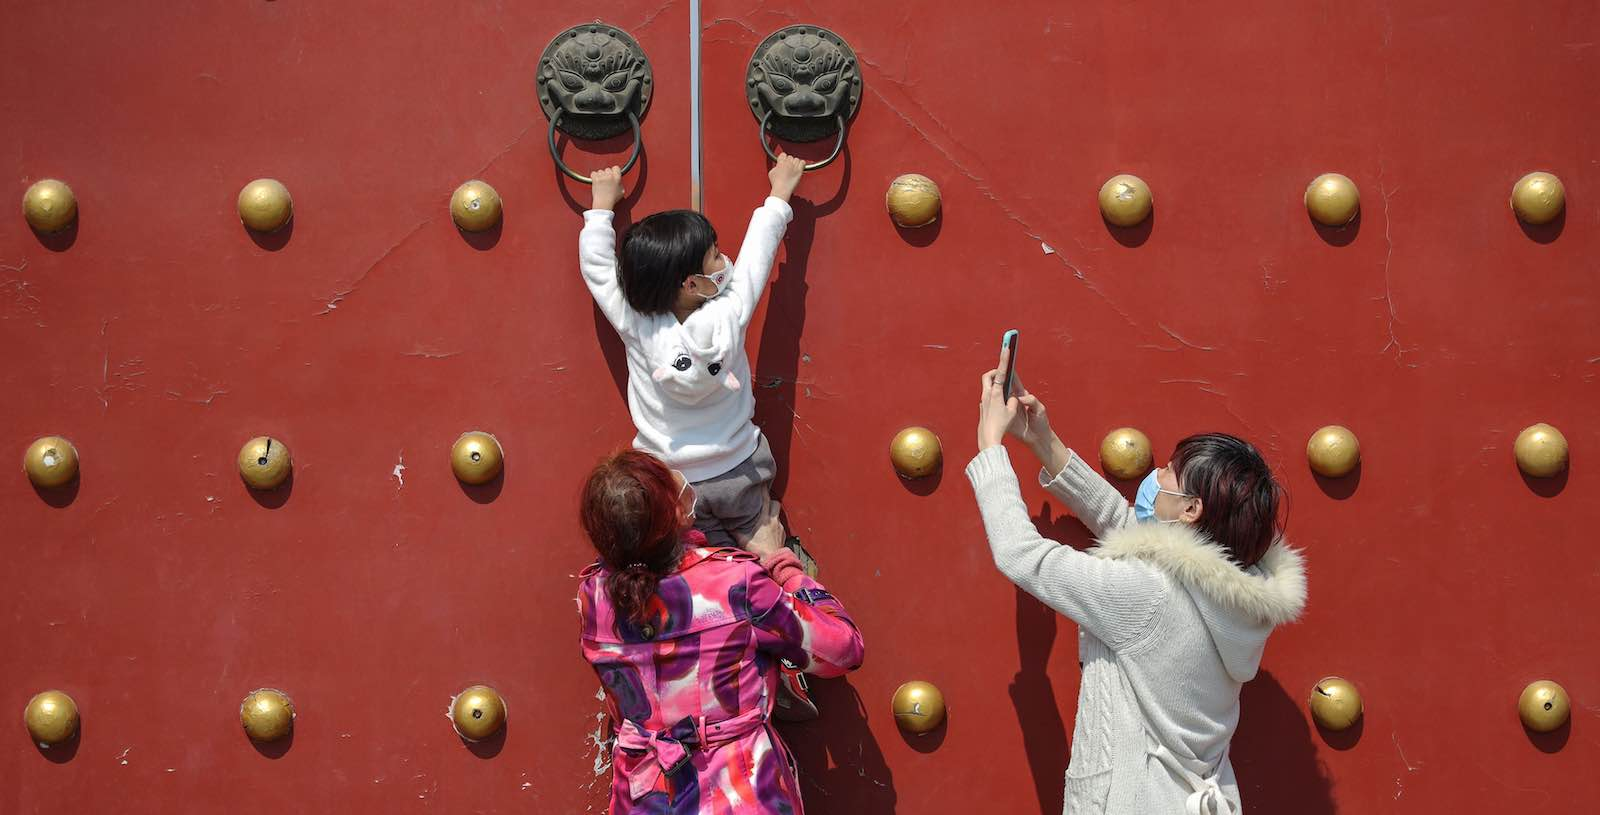 Asia was already experiencing the increasingly dominant force of geopolitical competition between the great powers – and that competition will continue (STR/AFP via Getty Images)